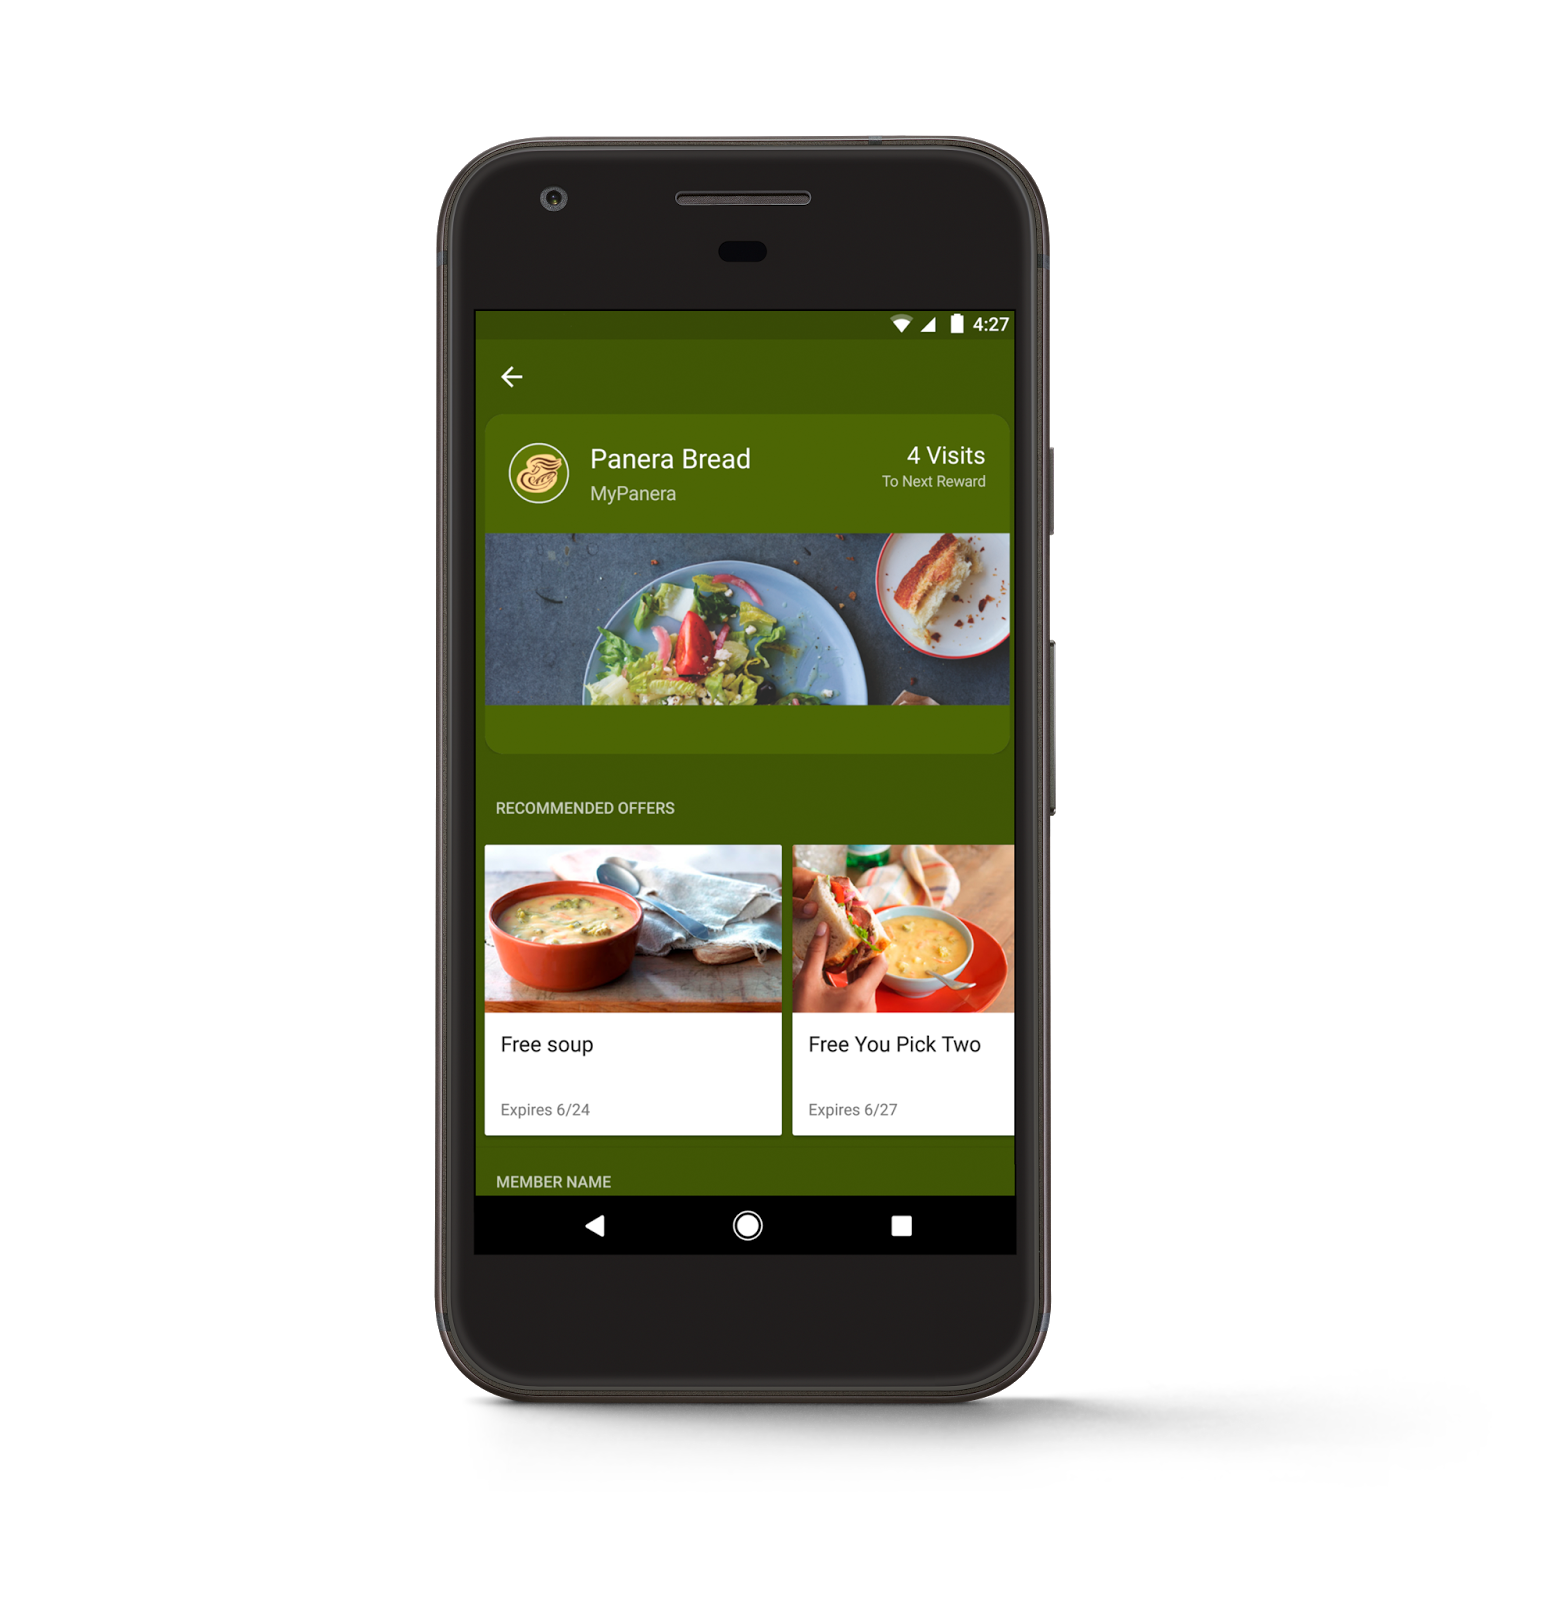 Android Developers Blog: What's next for Google payment and